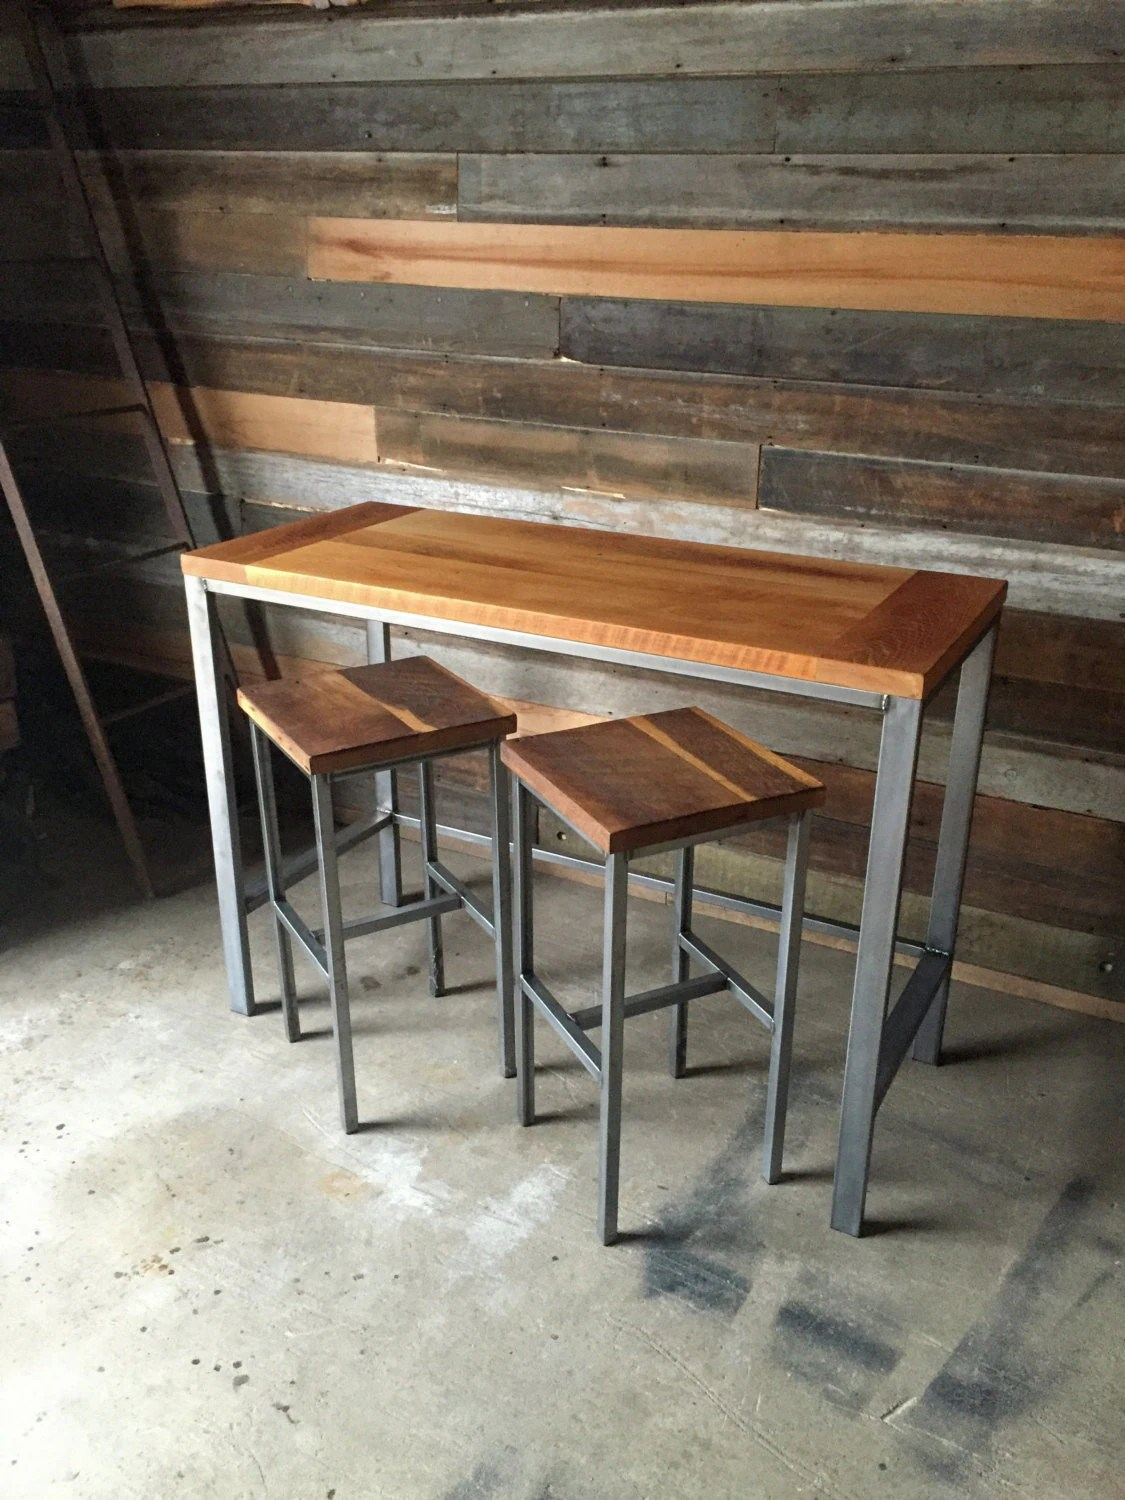 Stehtisch Holz Rechteckig Reclaimed Wood Pub Table With Industrial Metal Base